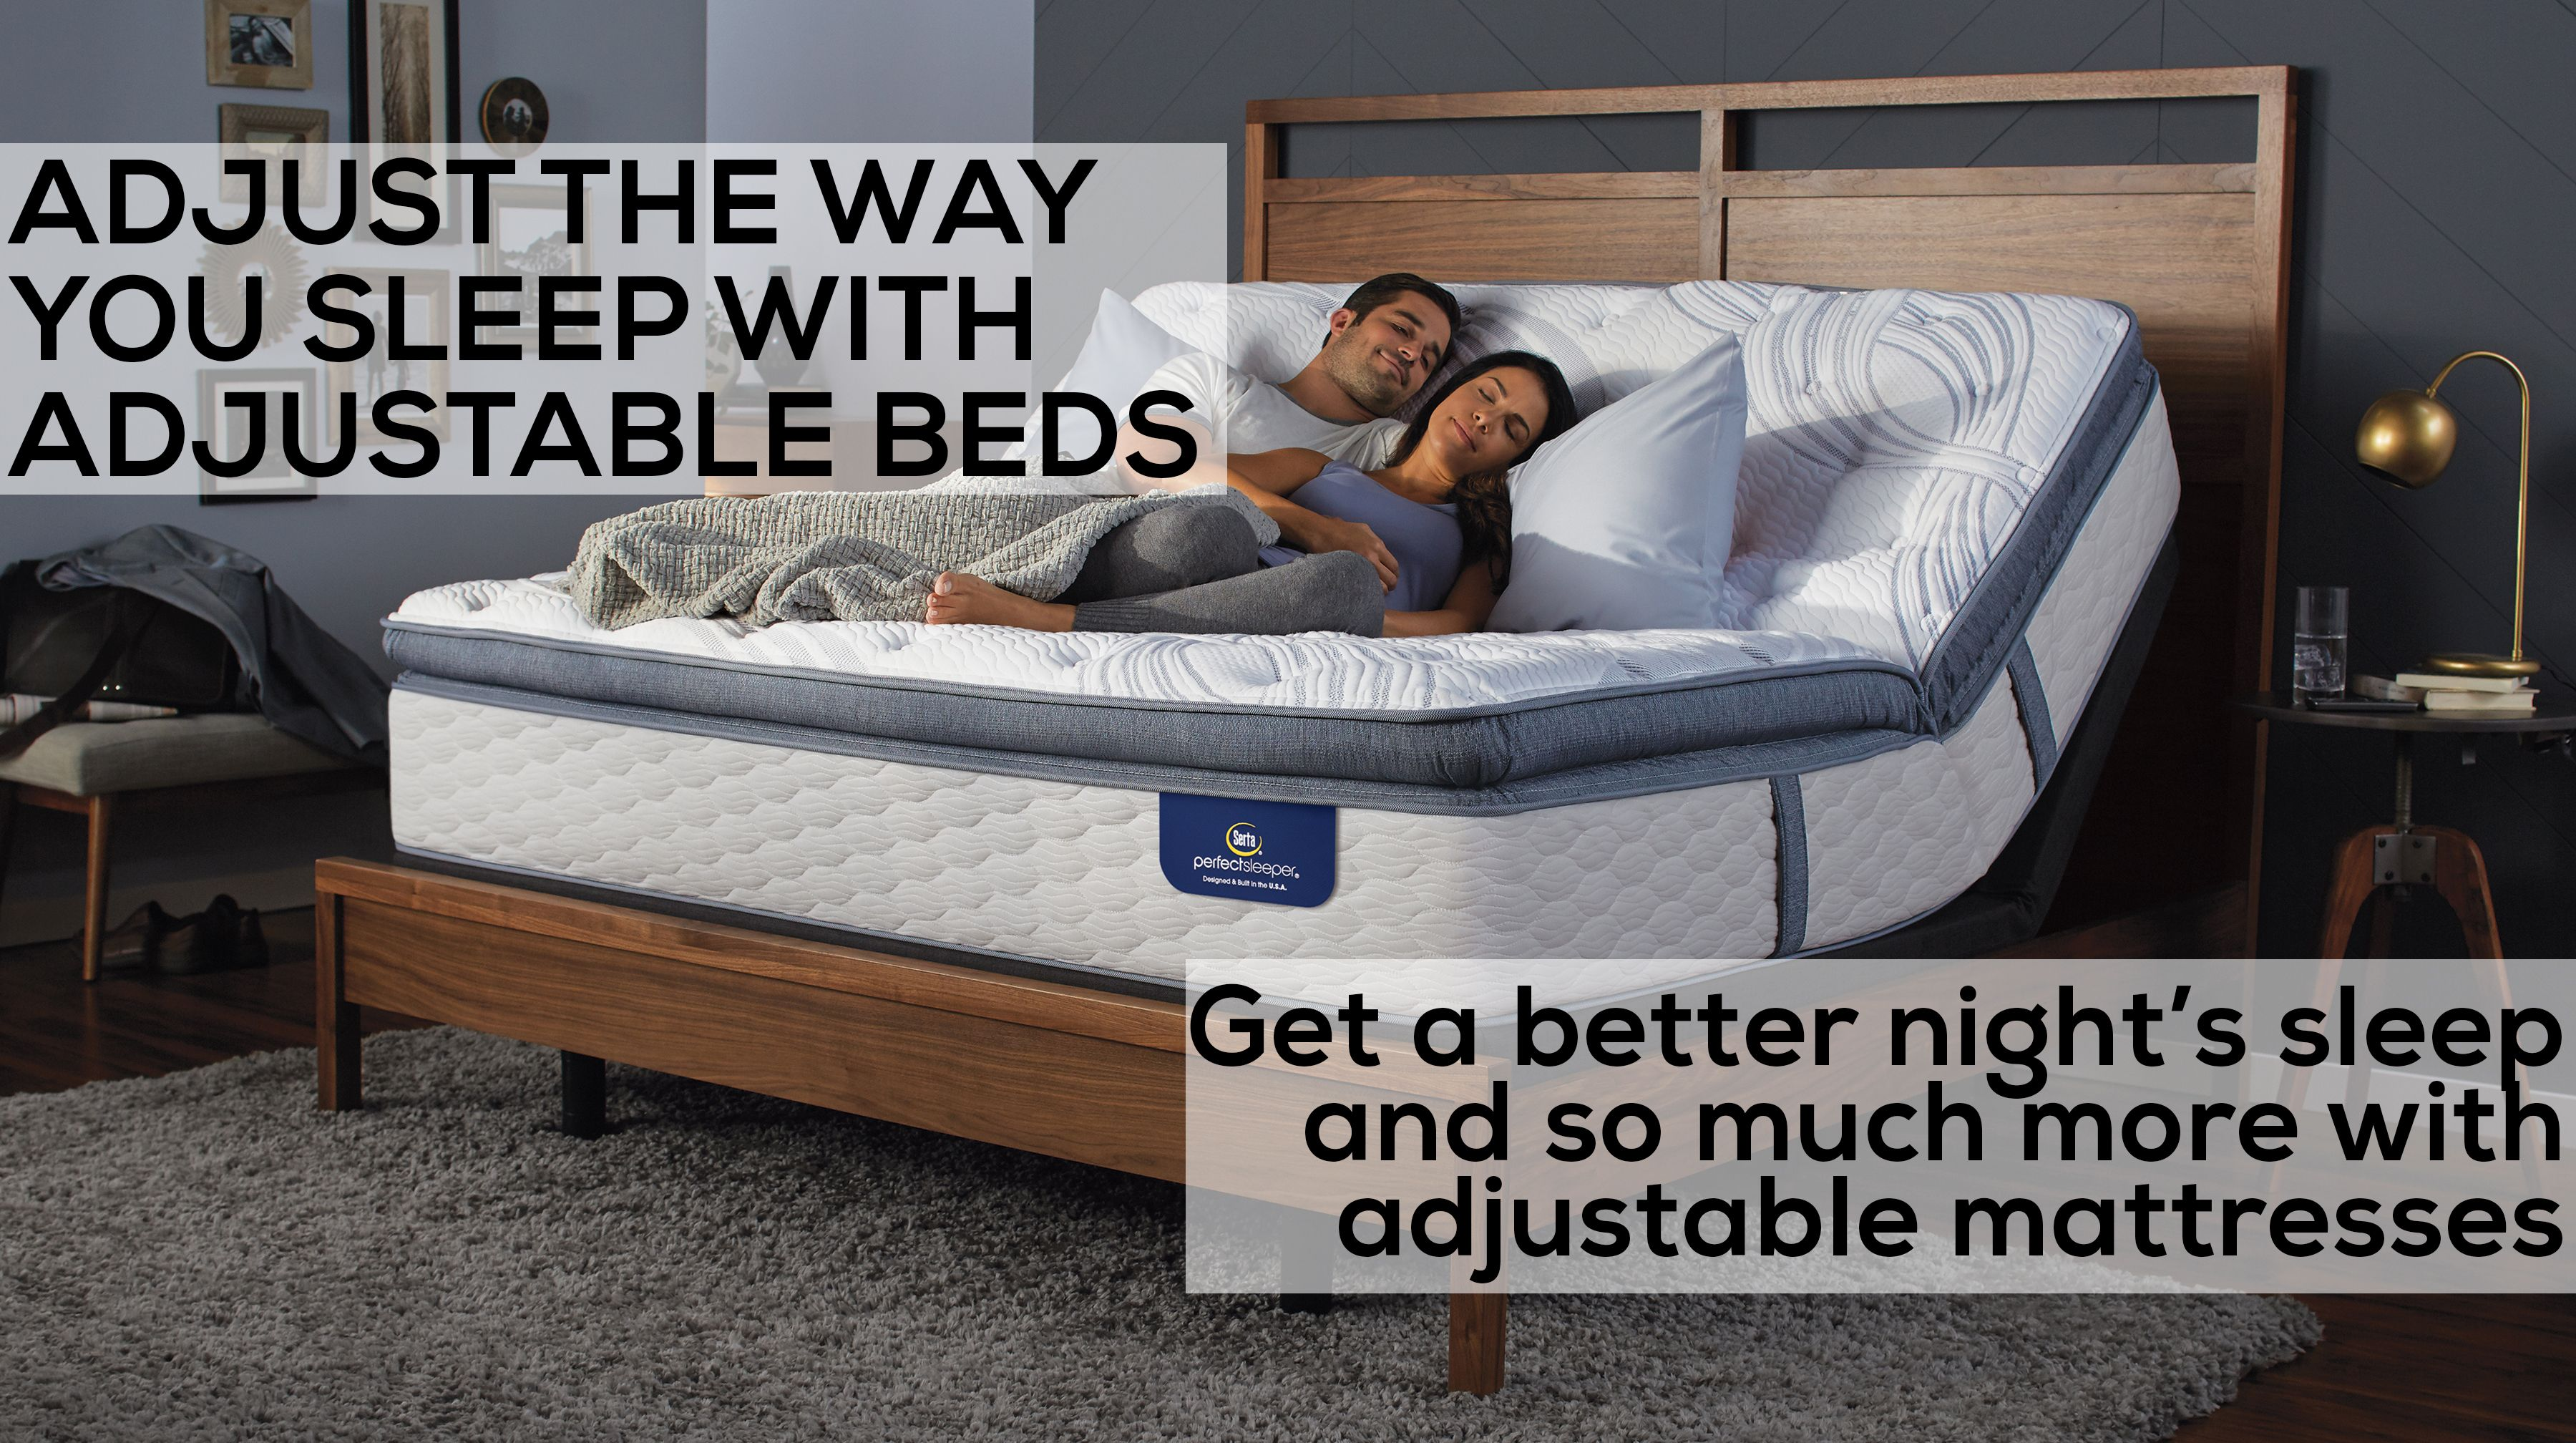 Adjust The Way You Sleep With Adjustable Beds Adjustable Beds Bed Bed Design